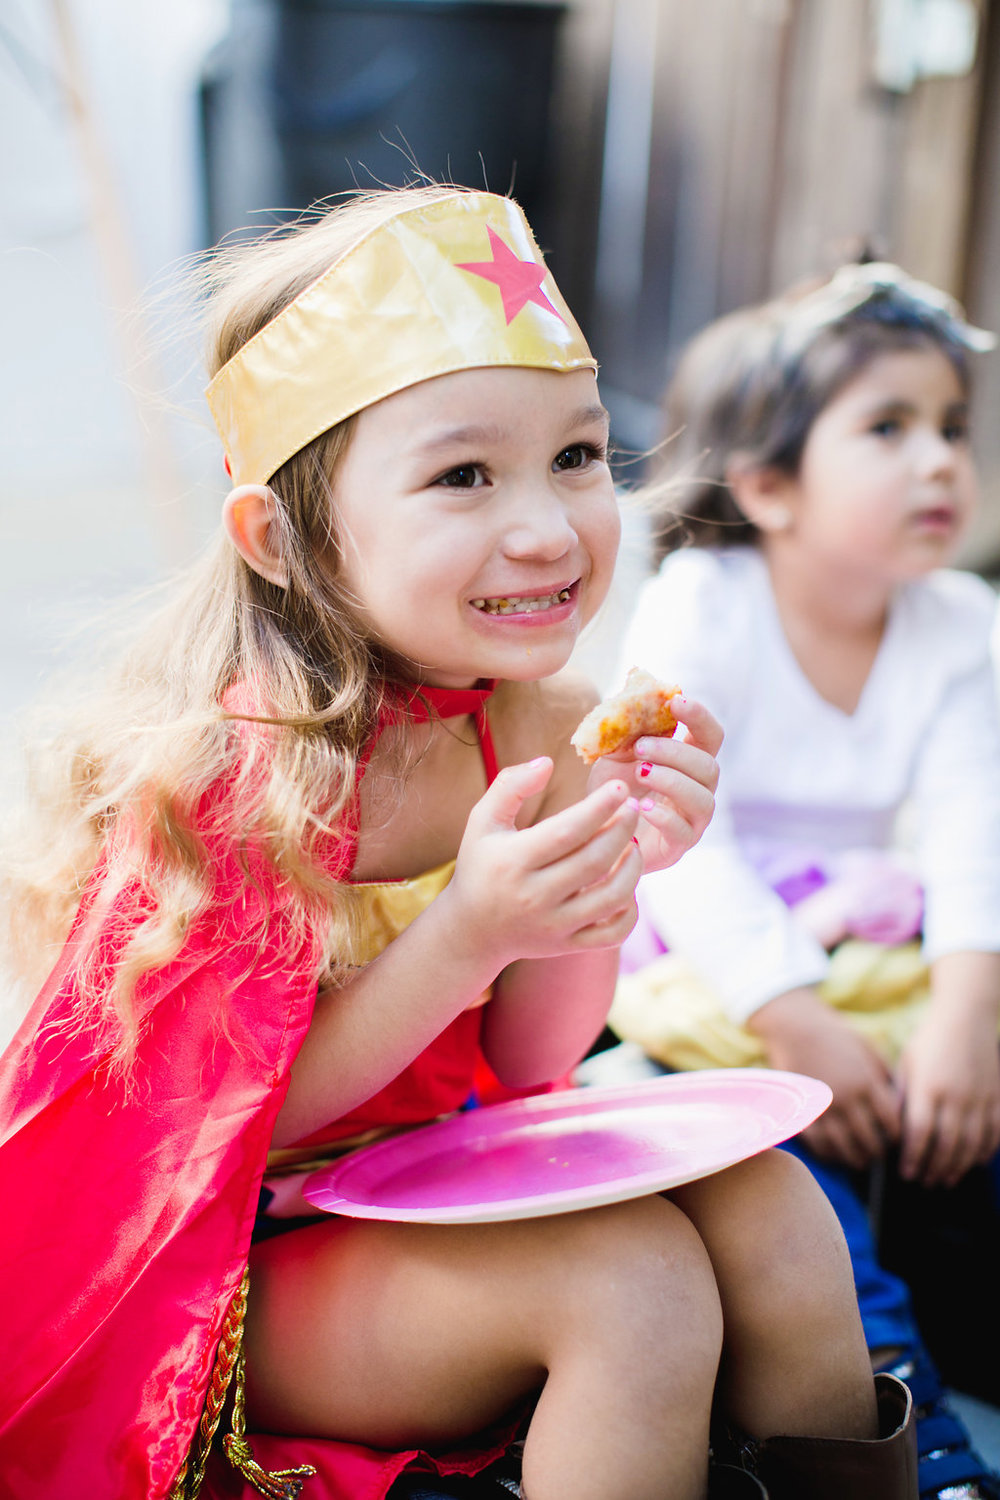 39f62-wonderwomansuperheroicecreampartypizzaforlunch.jpg